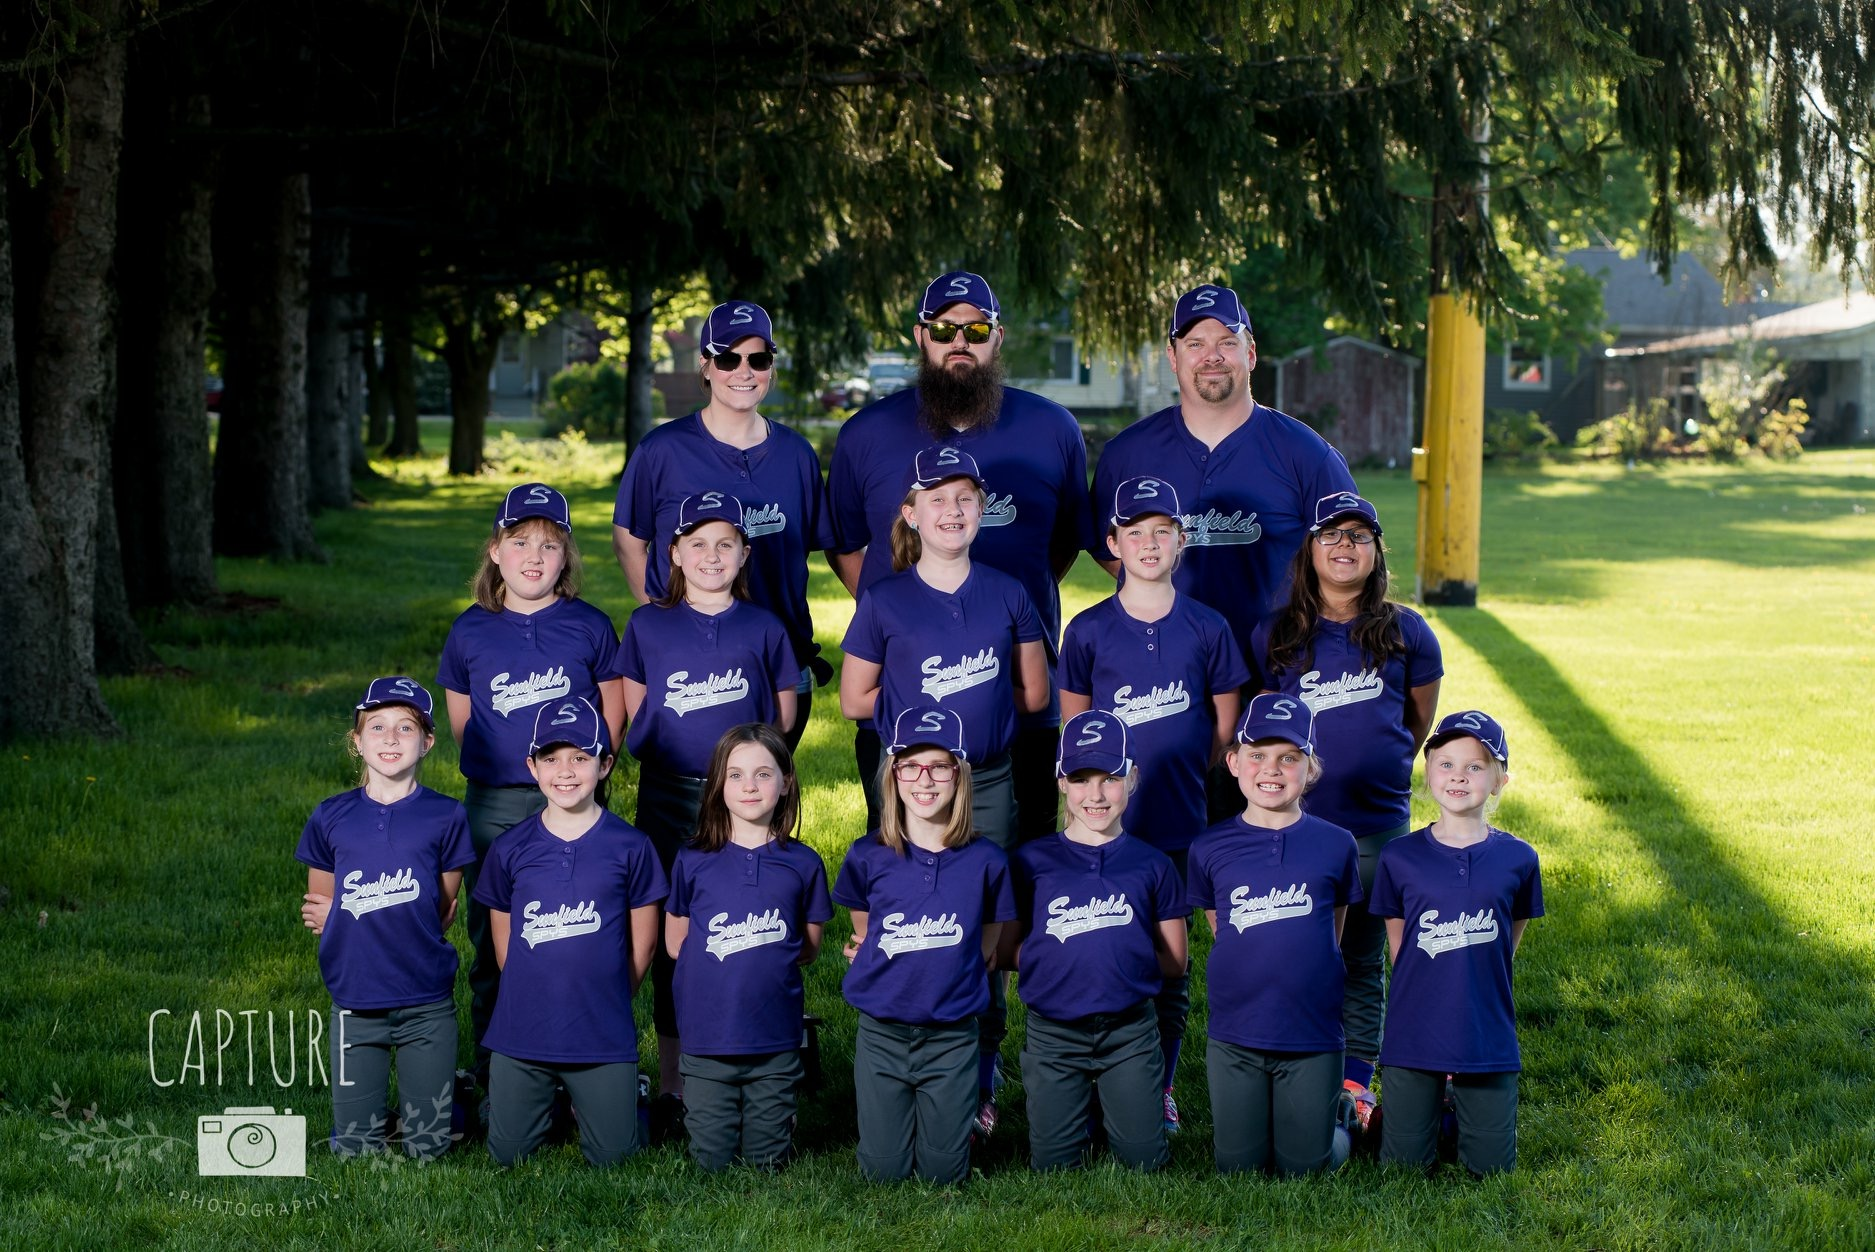 Sunfield SPY's Rookie Softball Team